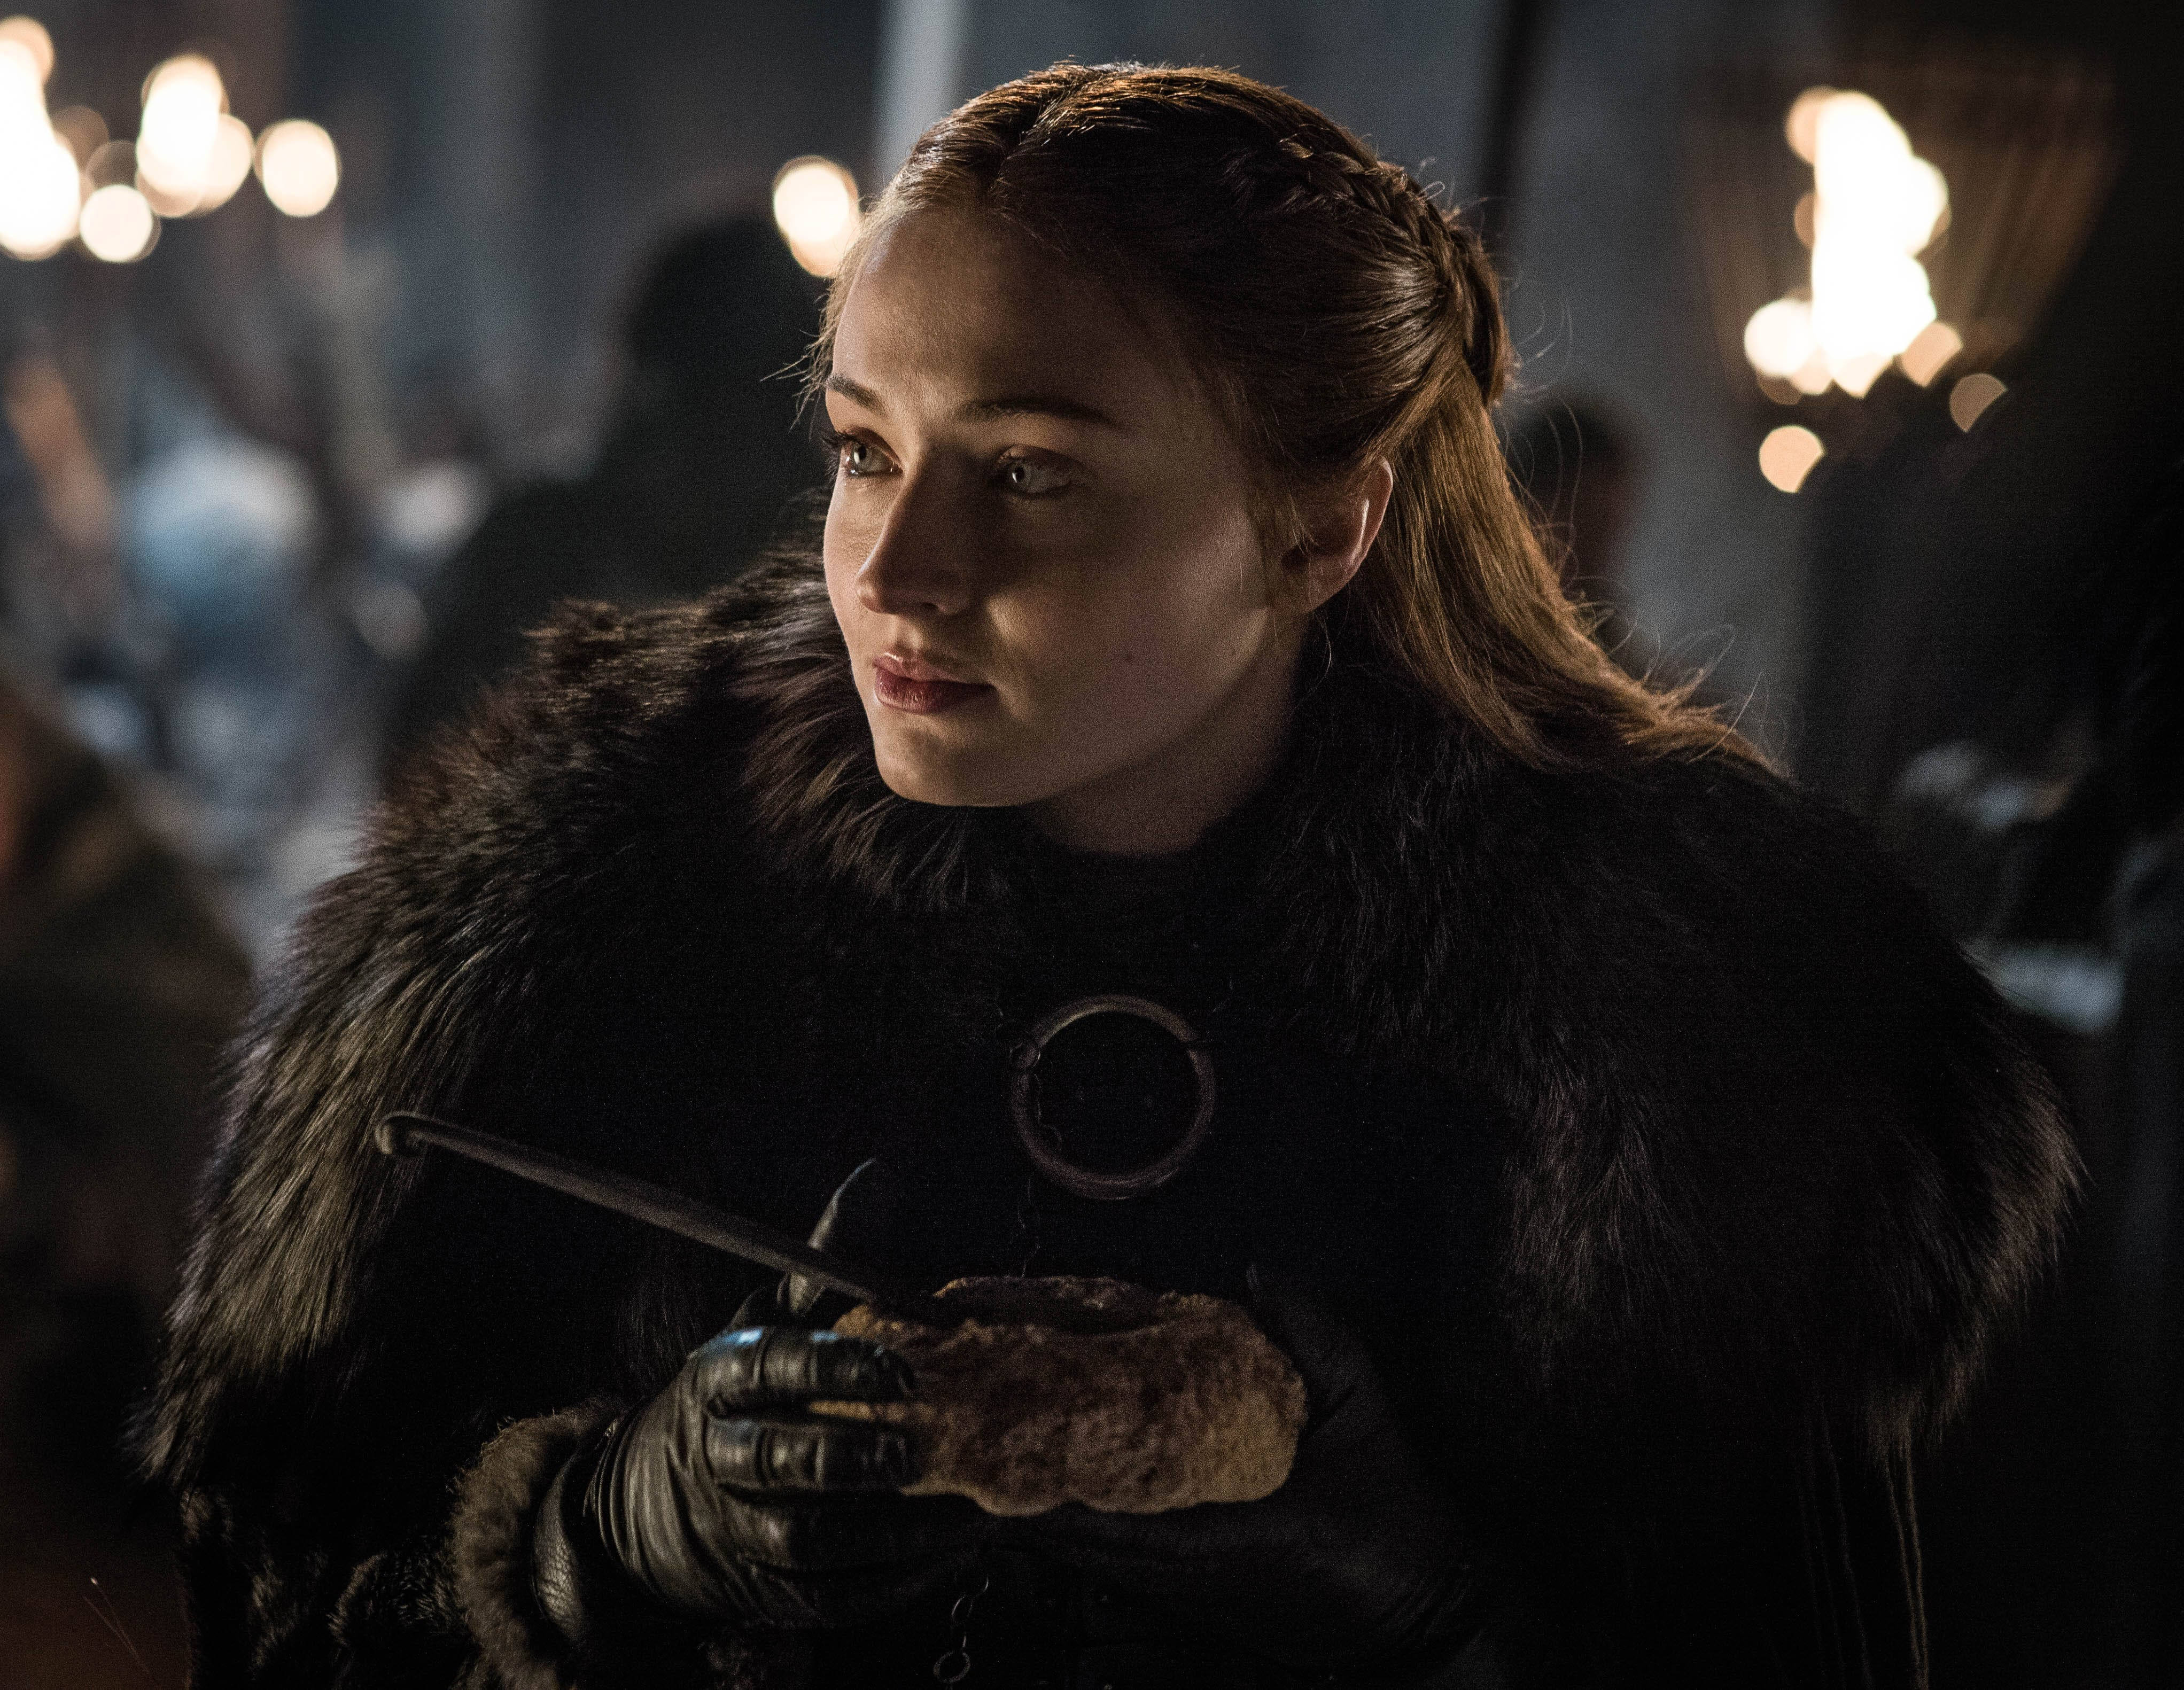 """Sophie Turner Has Seen That Game Of Thrones Petition & Thinks It's Totally """"Disrespectful"""""""